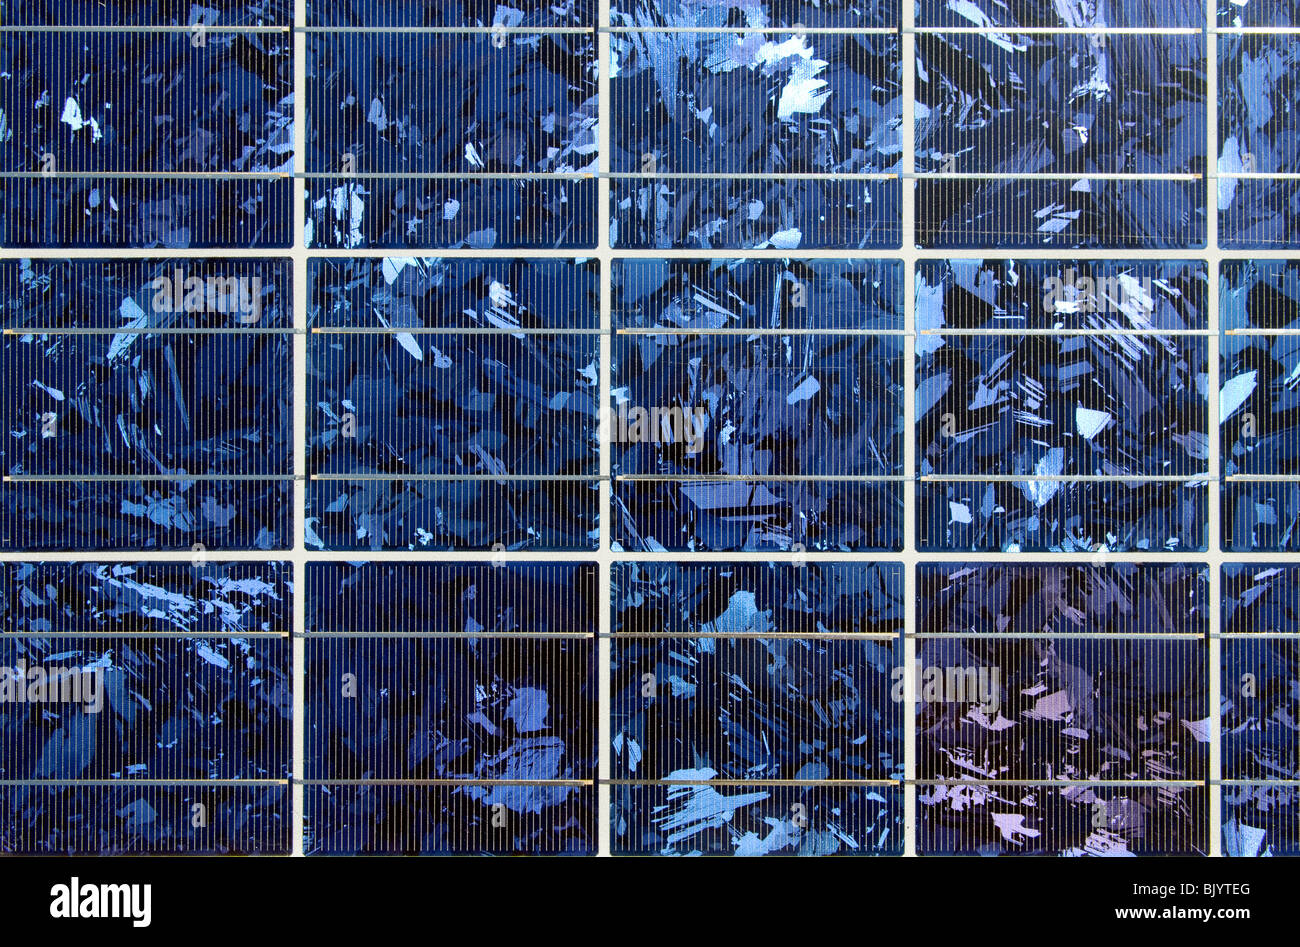 Close-Up of Solar module - Stock Image